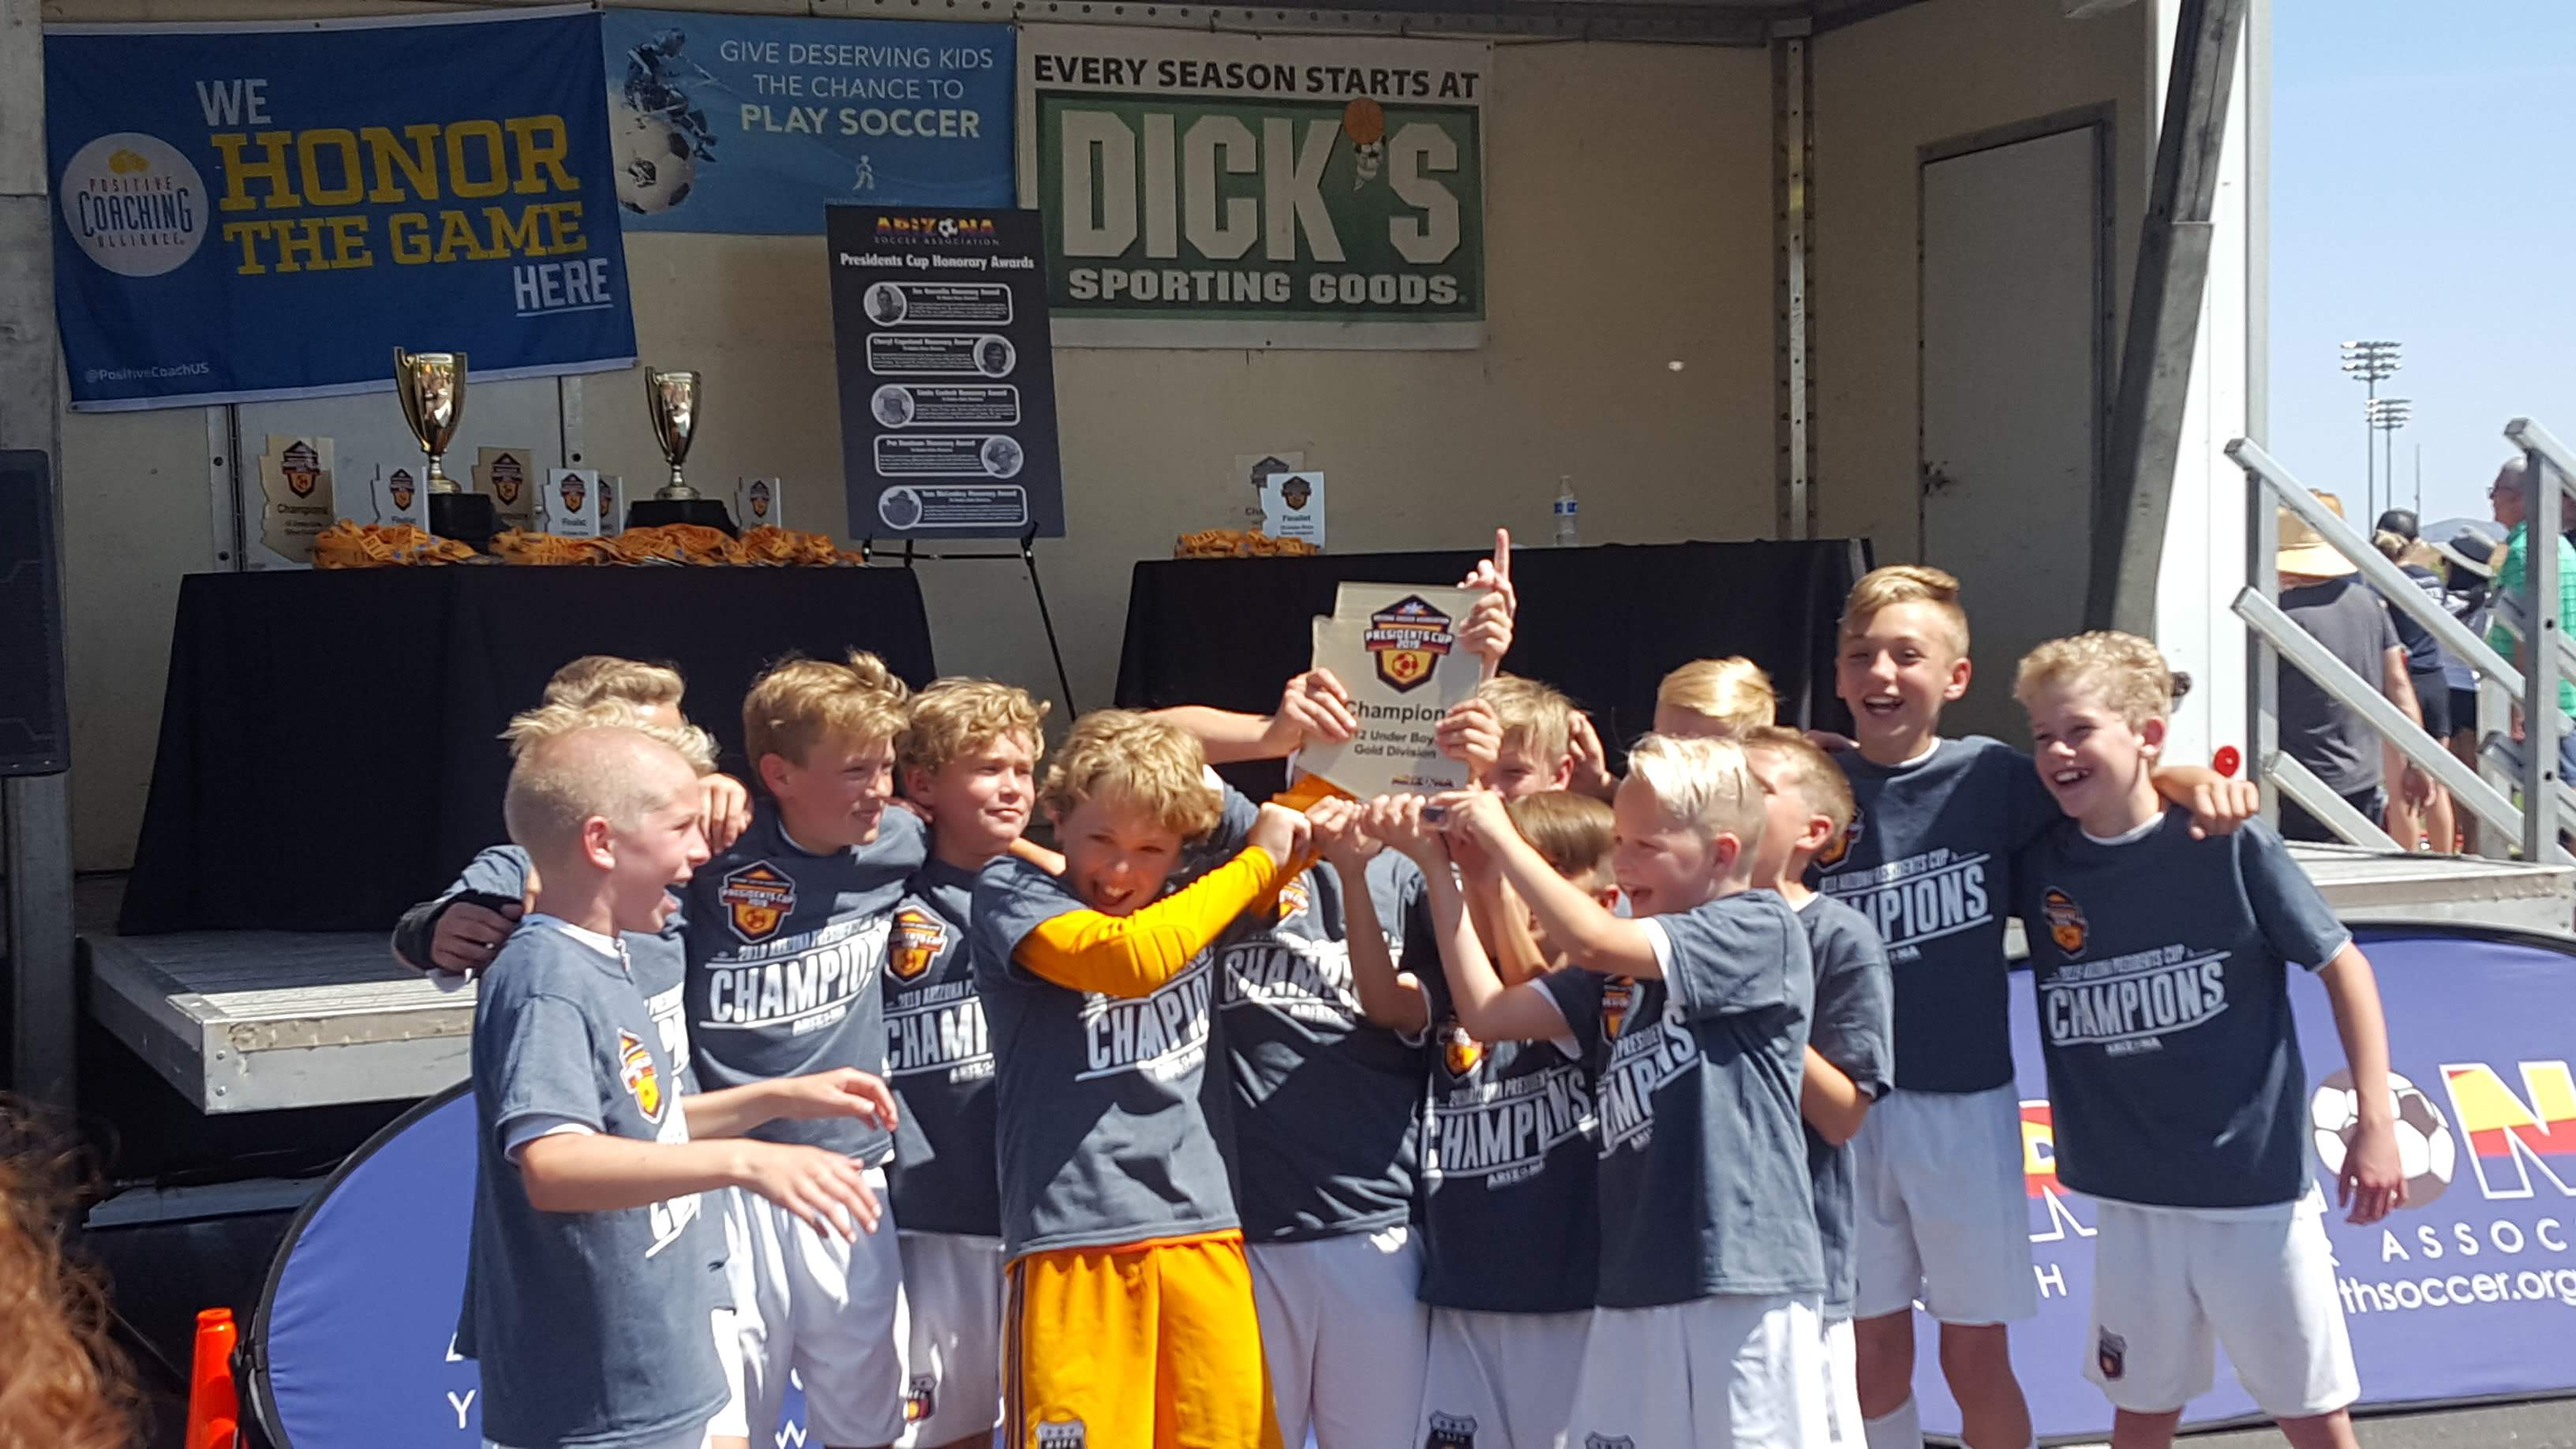 The 2007 Boys Blue soccer team holds up the trophy after winning the Arizona President's Cup Tournament in April 2019 in Phoenix.